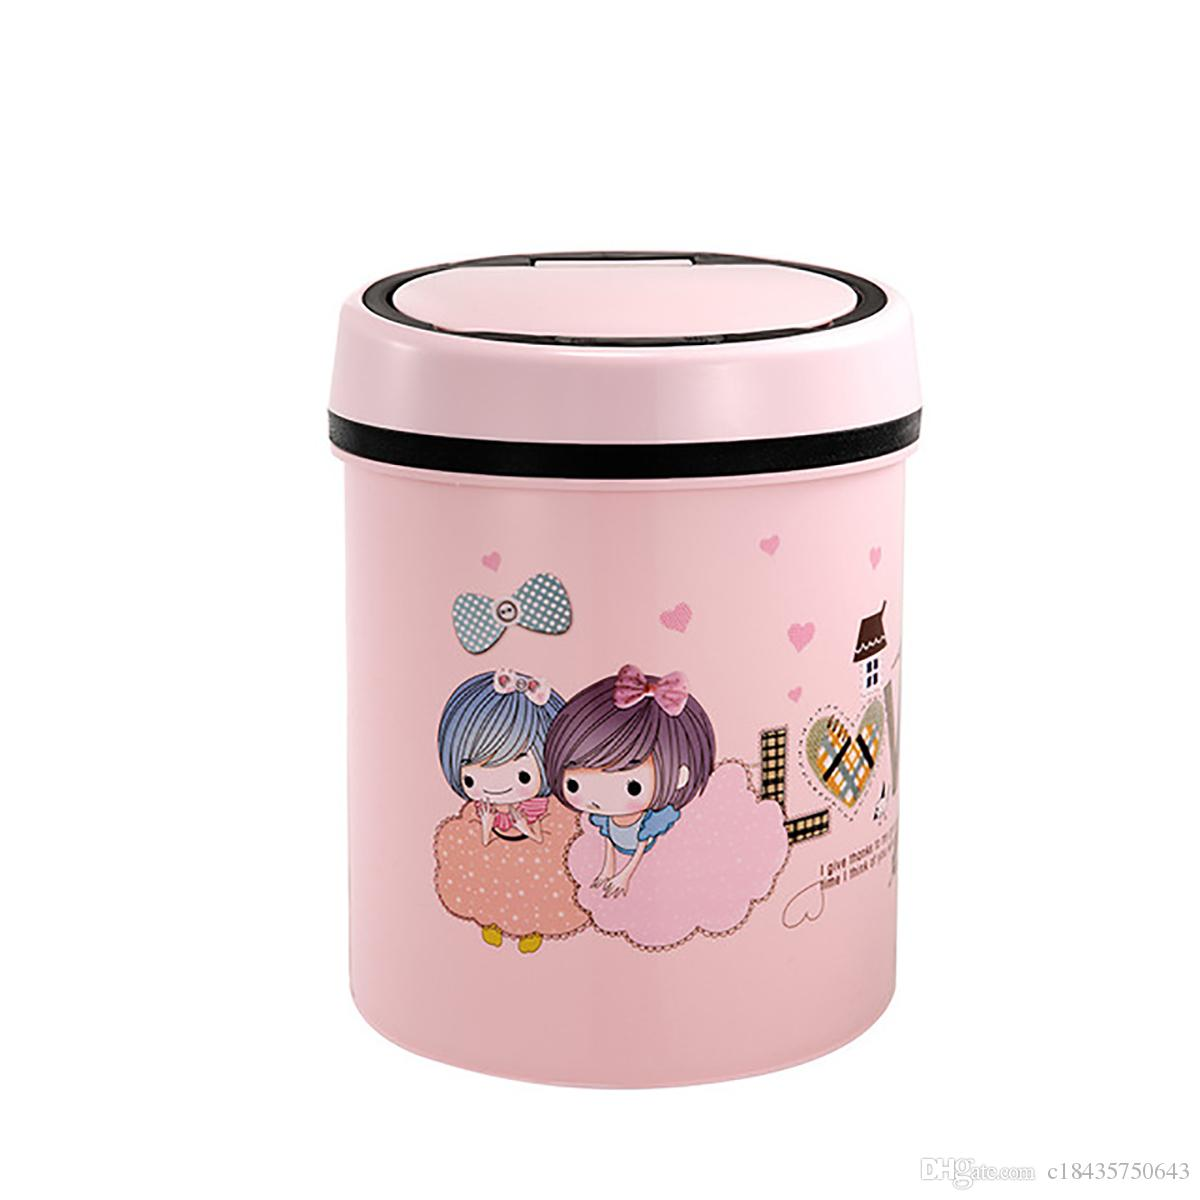 Small Automatic Trash Can Touchless Intelligent Induction Garbage Bin With Inner Bucket Contactless Circulator Quiet Lid Close Can Pink